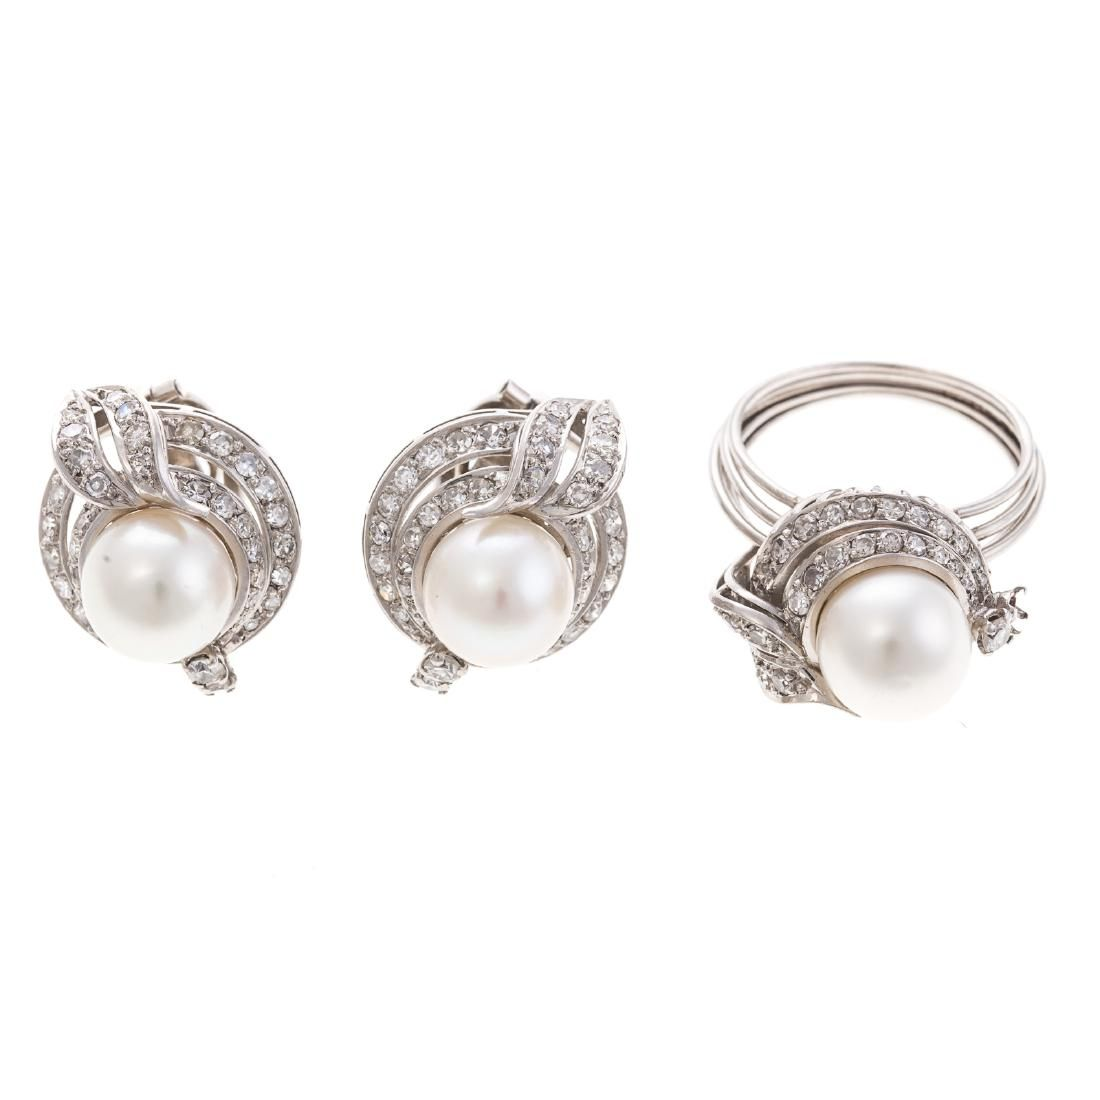 A Pearl & Diamond Earring and Ring Set in Platinum